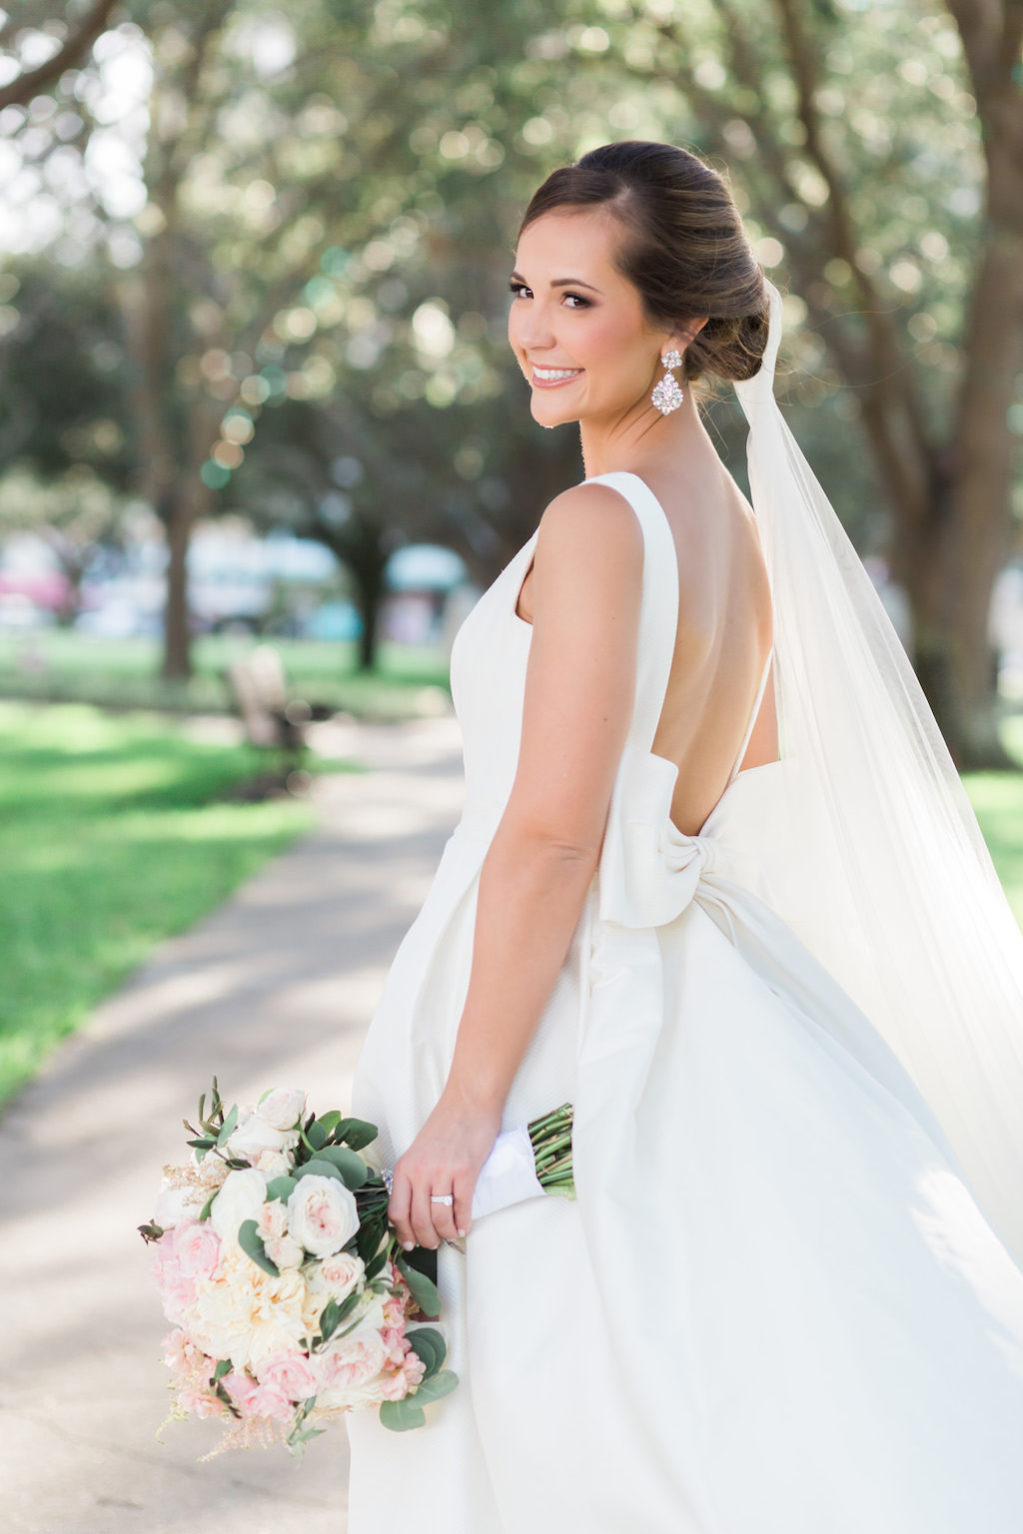 Outdoor Park Bridal Wedding Portrait in Open Back with Bow Rosa Clara Bridal Dress, with Blush Pink and White Peony Bouquet with Greenery, Comb Veil and Large Drop Earrings | St Pete Wedding Hair and Makeup Michele Renee The Studio